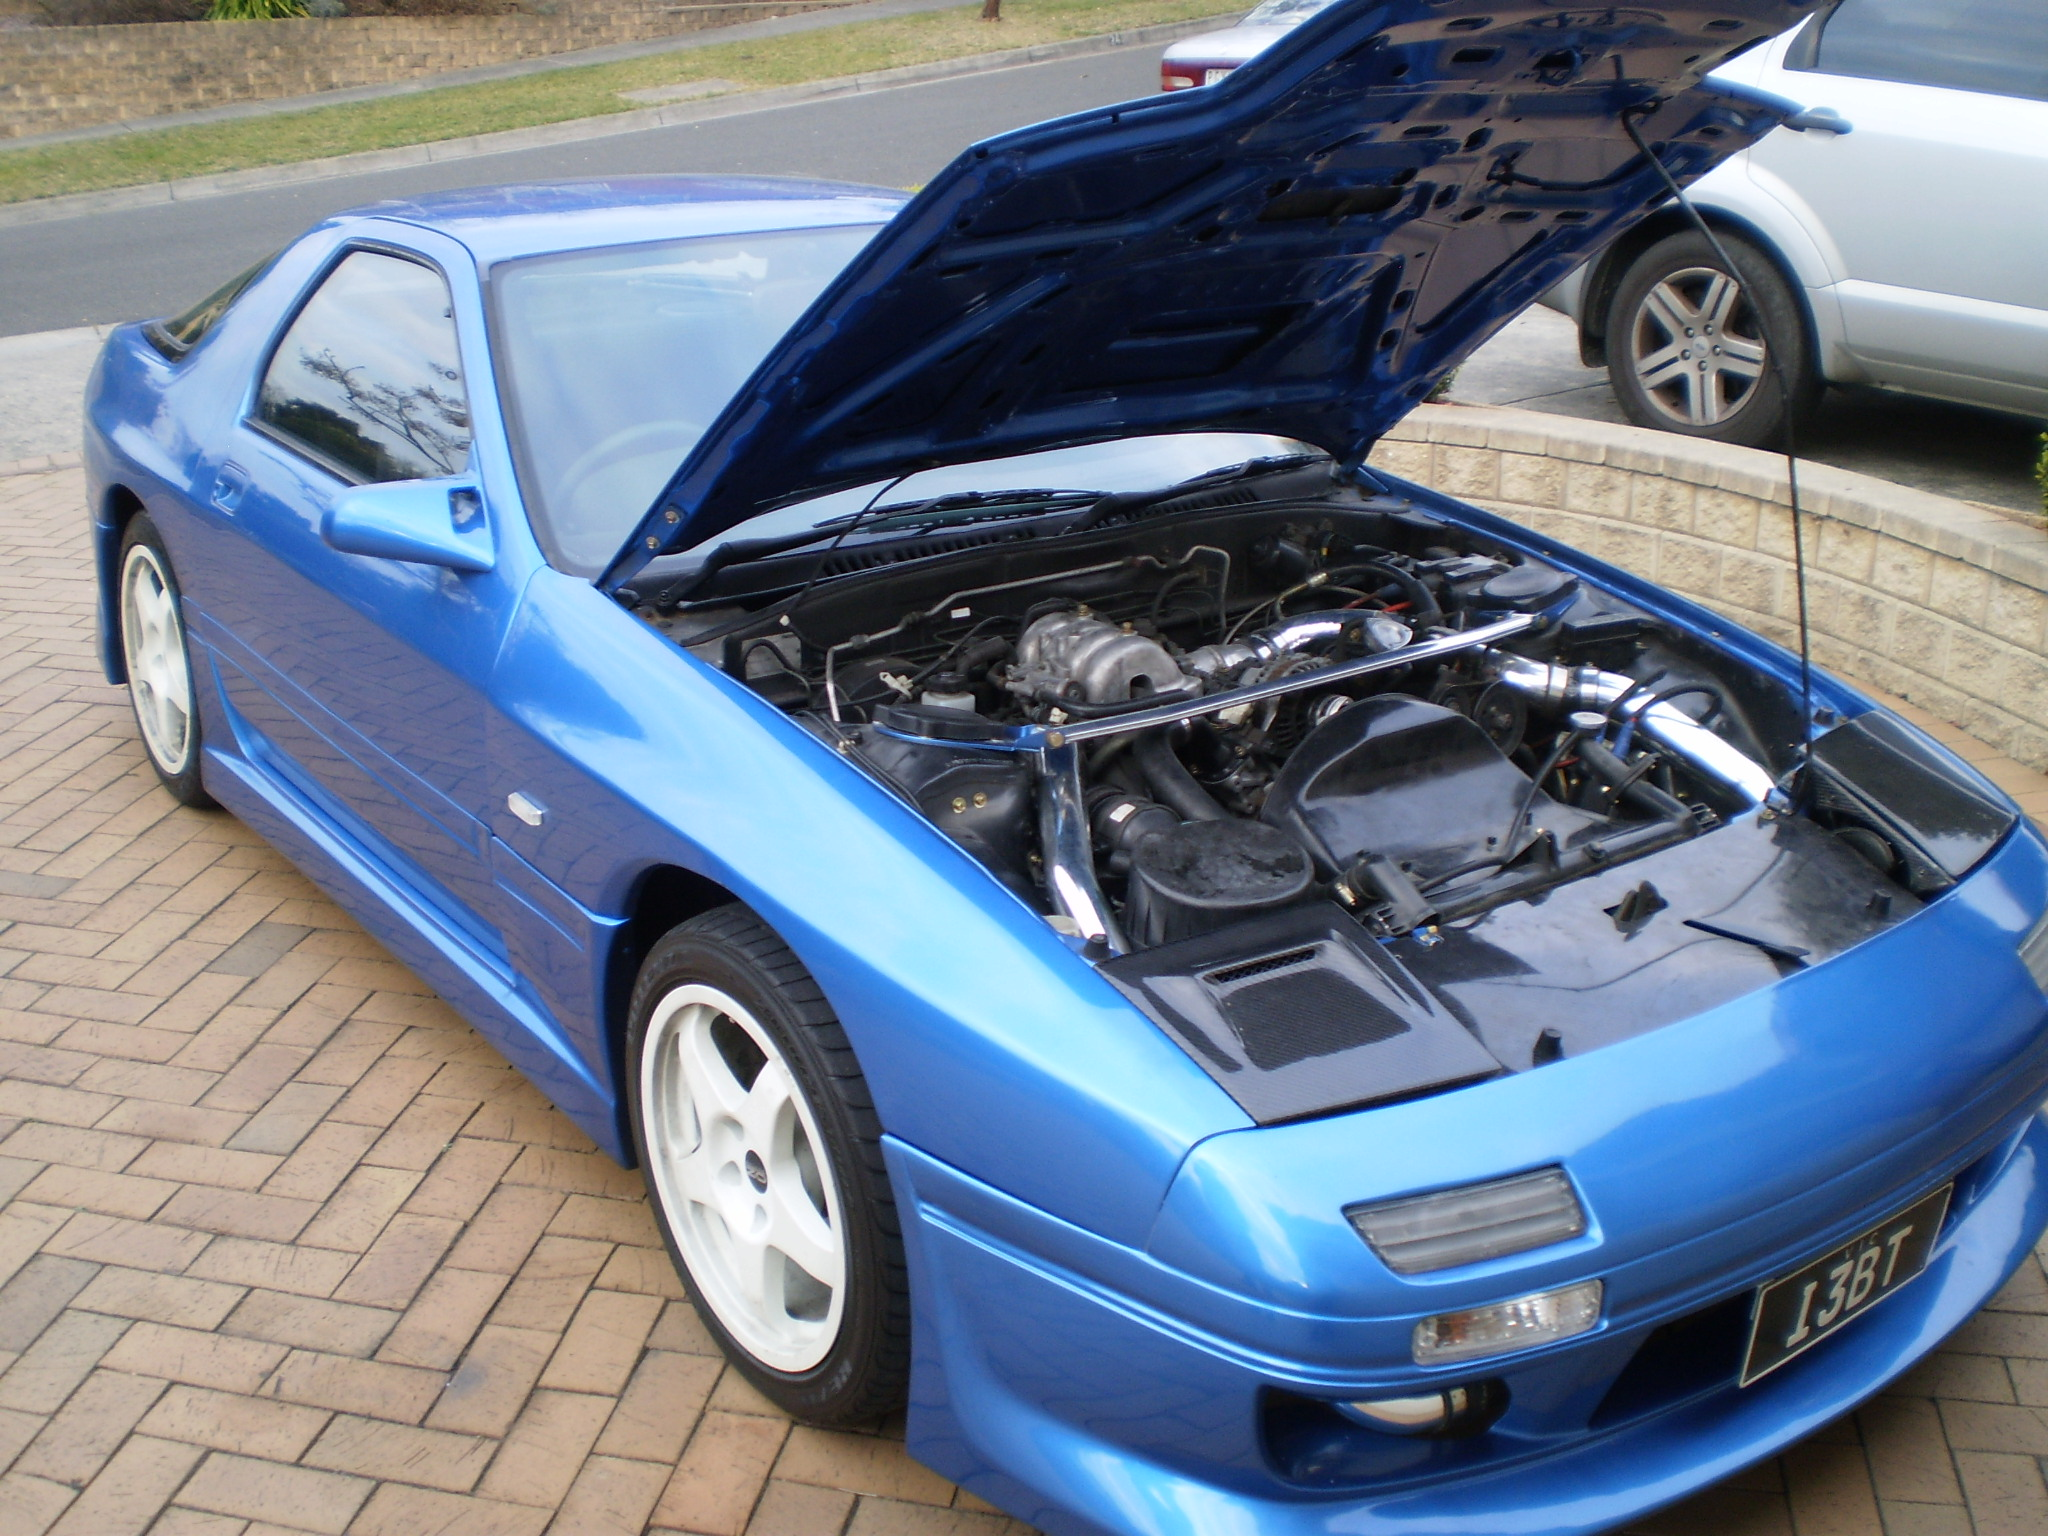 1989 Maxda Rx7 with larger intercooler